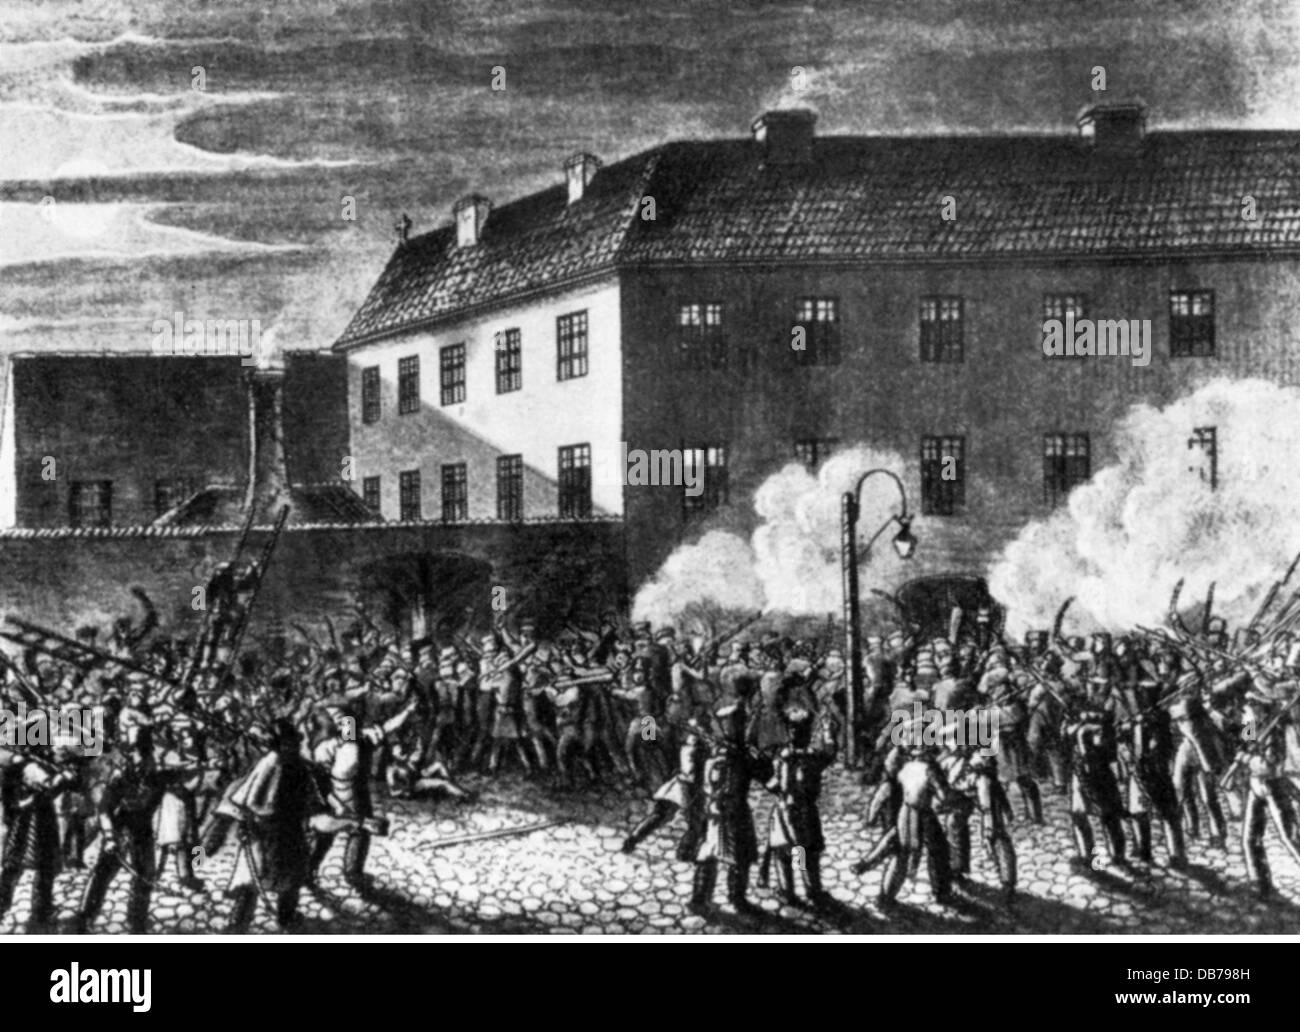 Polish uprising 1830 - 1831, insurgents storming the prison in Warsaw,  November 1831, contemporary aquatint by F. K. Dietrich, Poland, November  Uprising, ...